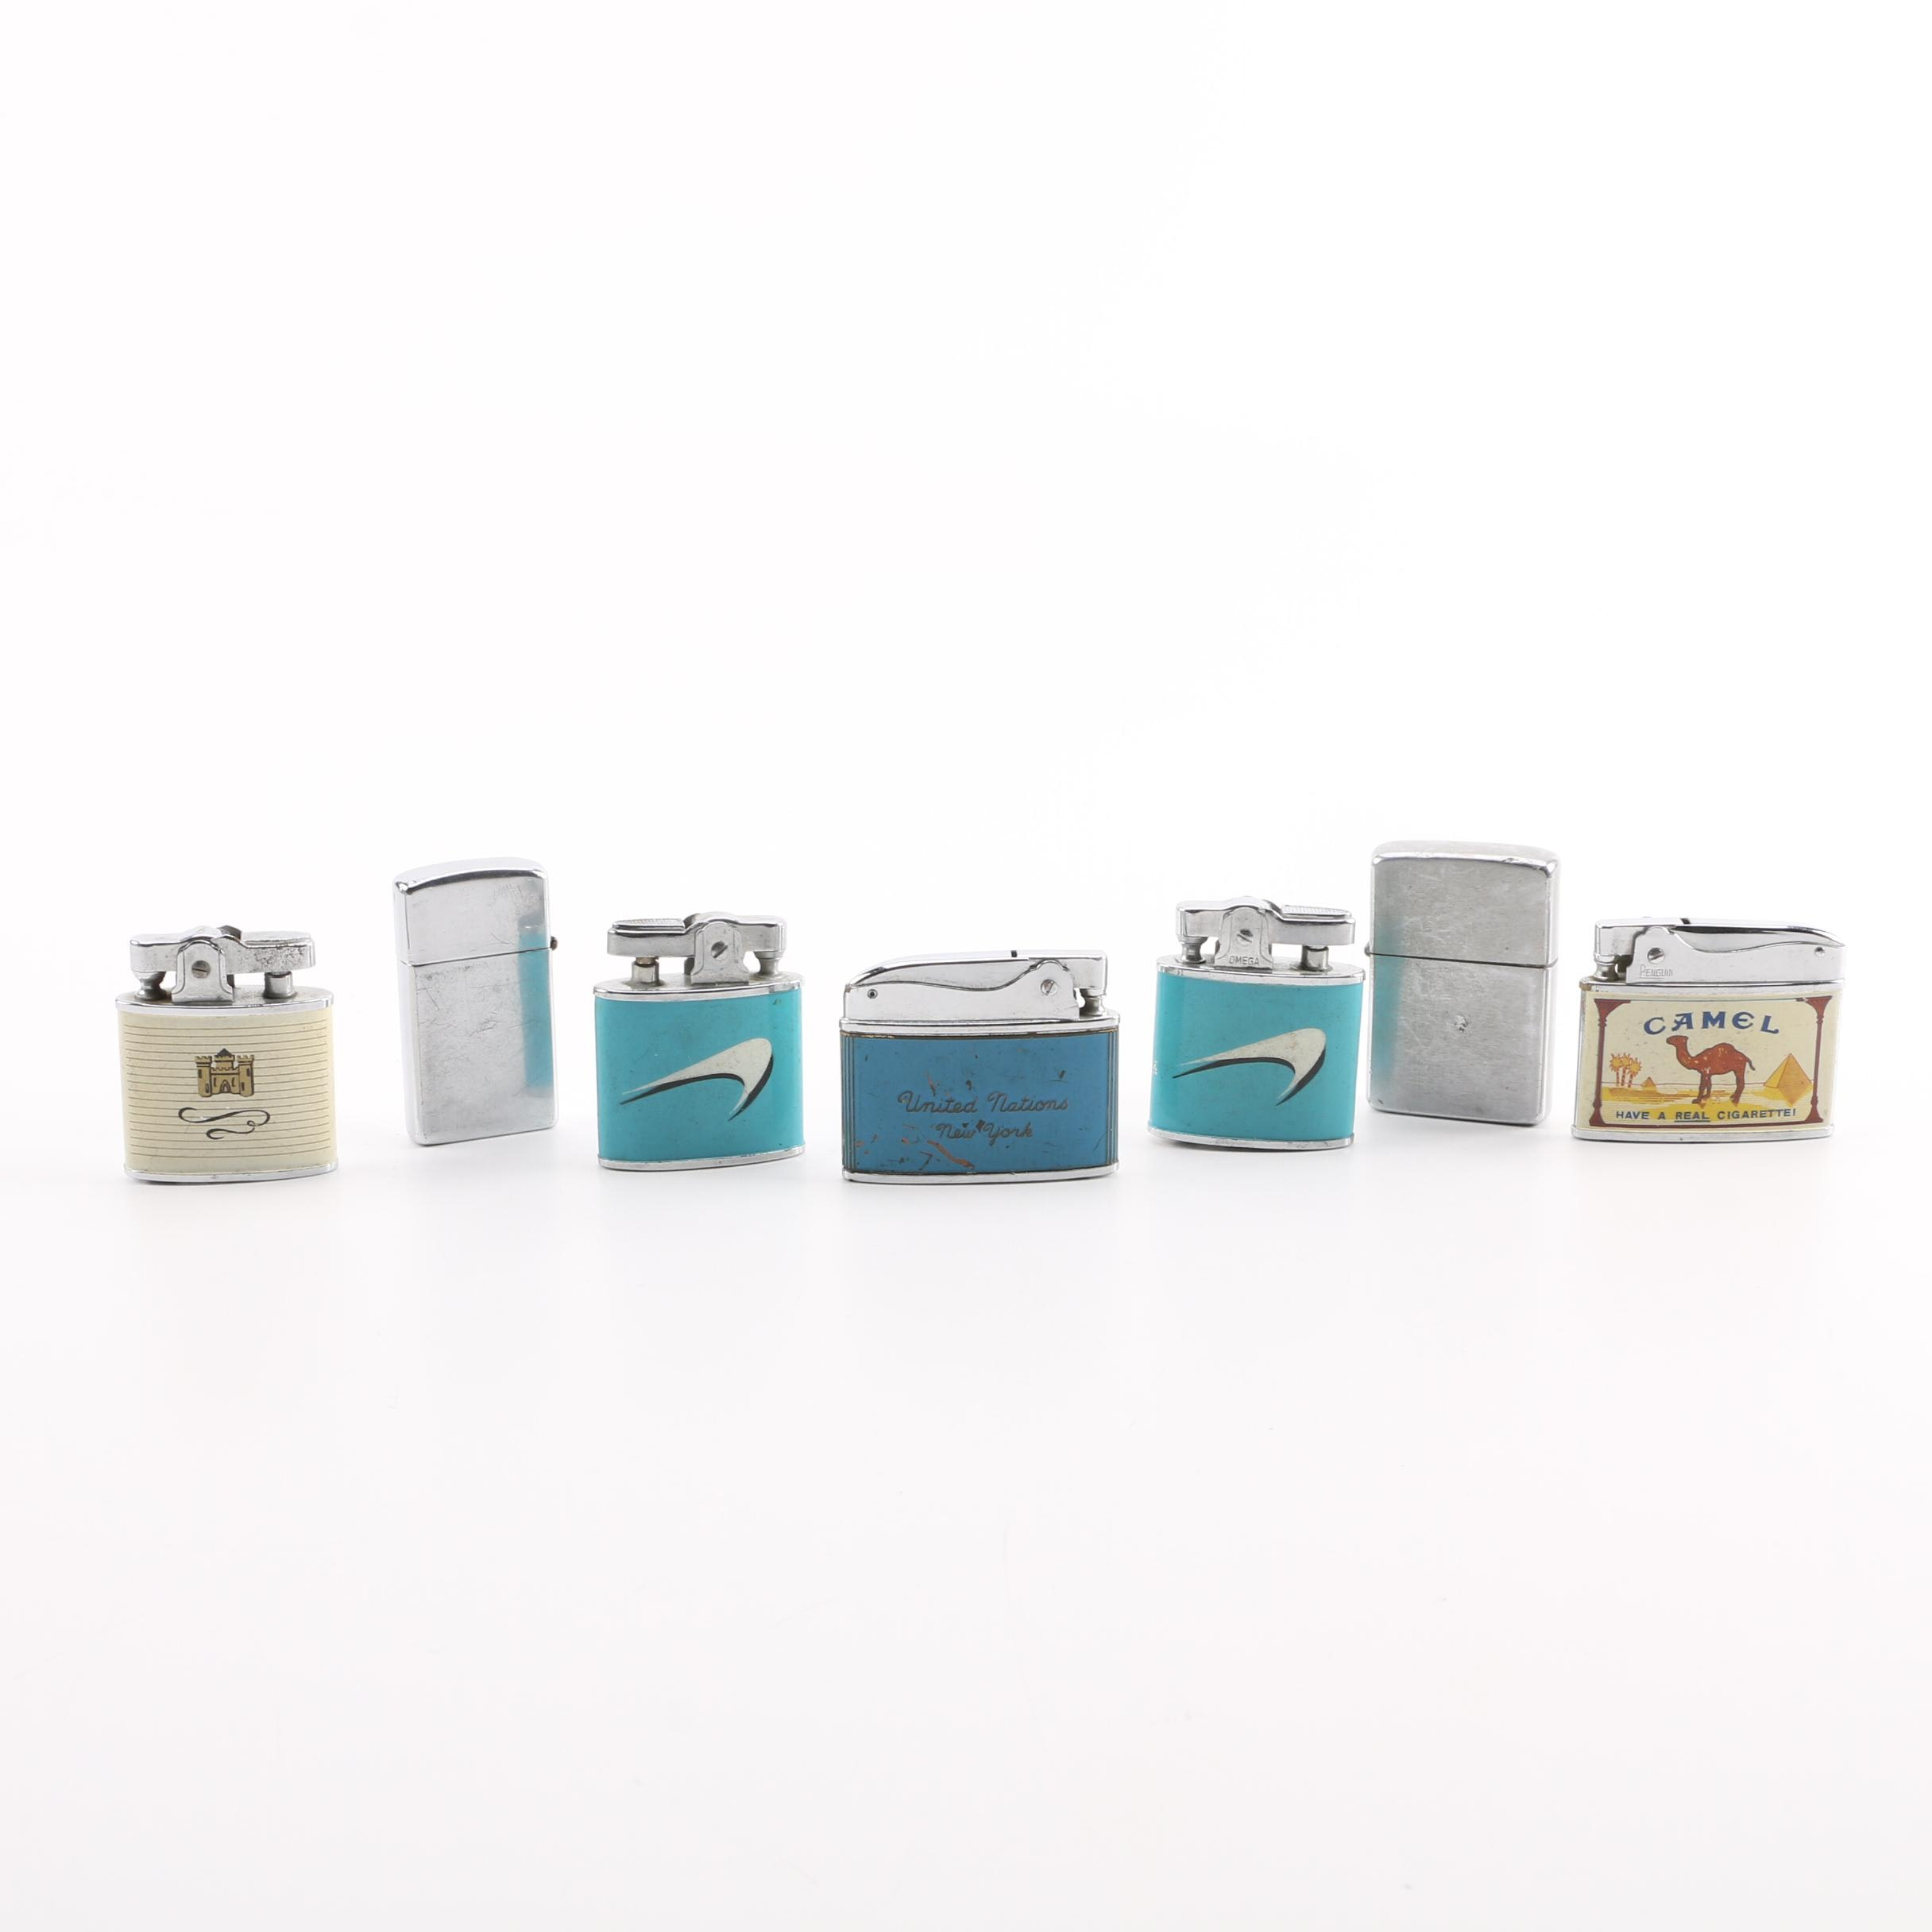 Collection of Vintage Lighters